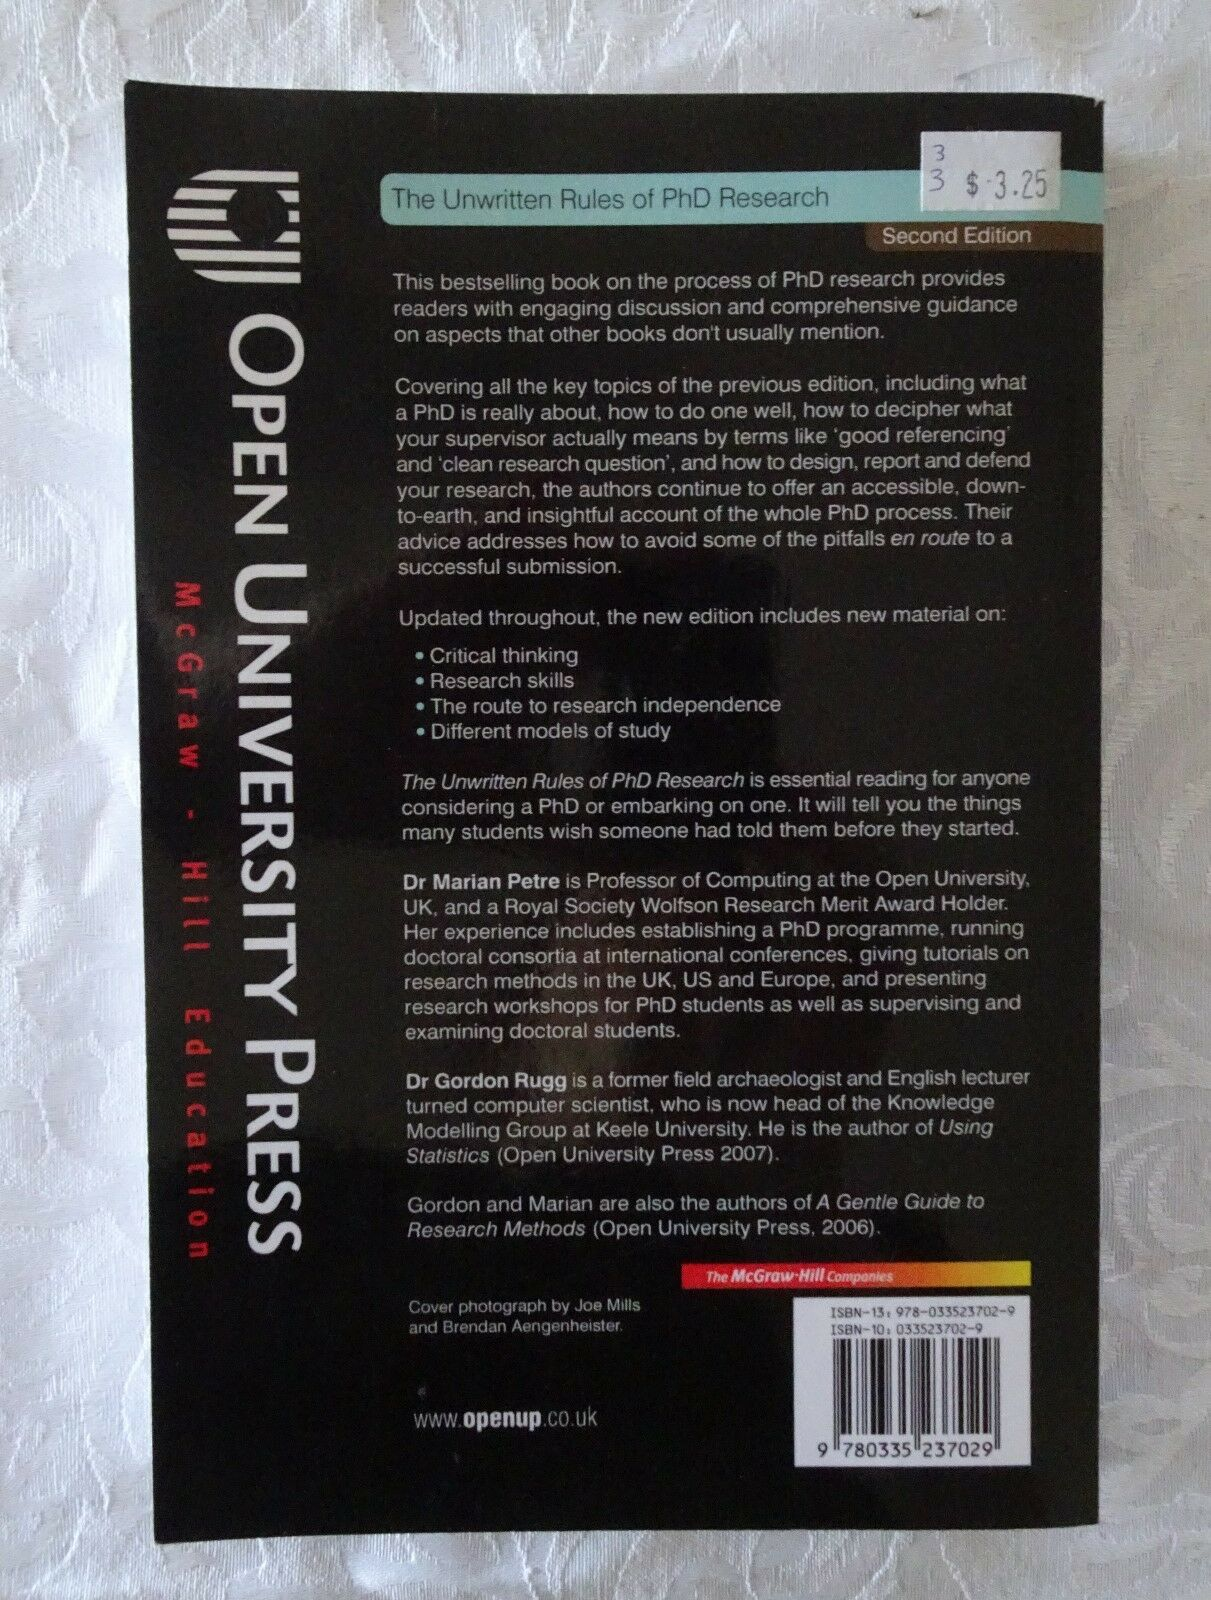 Phd of research the rules pdf unwritten